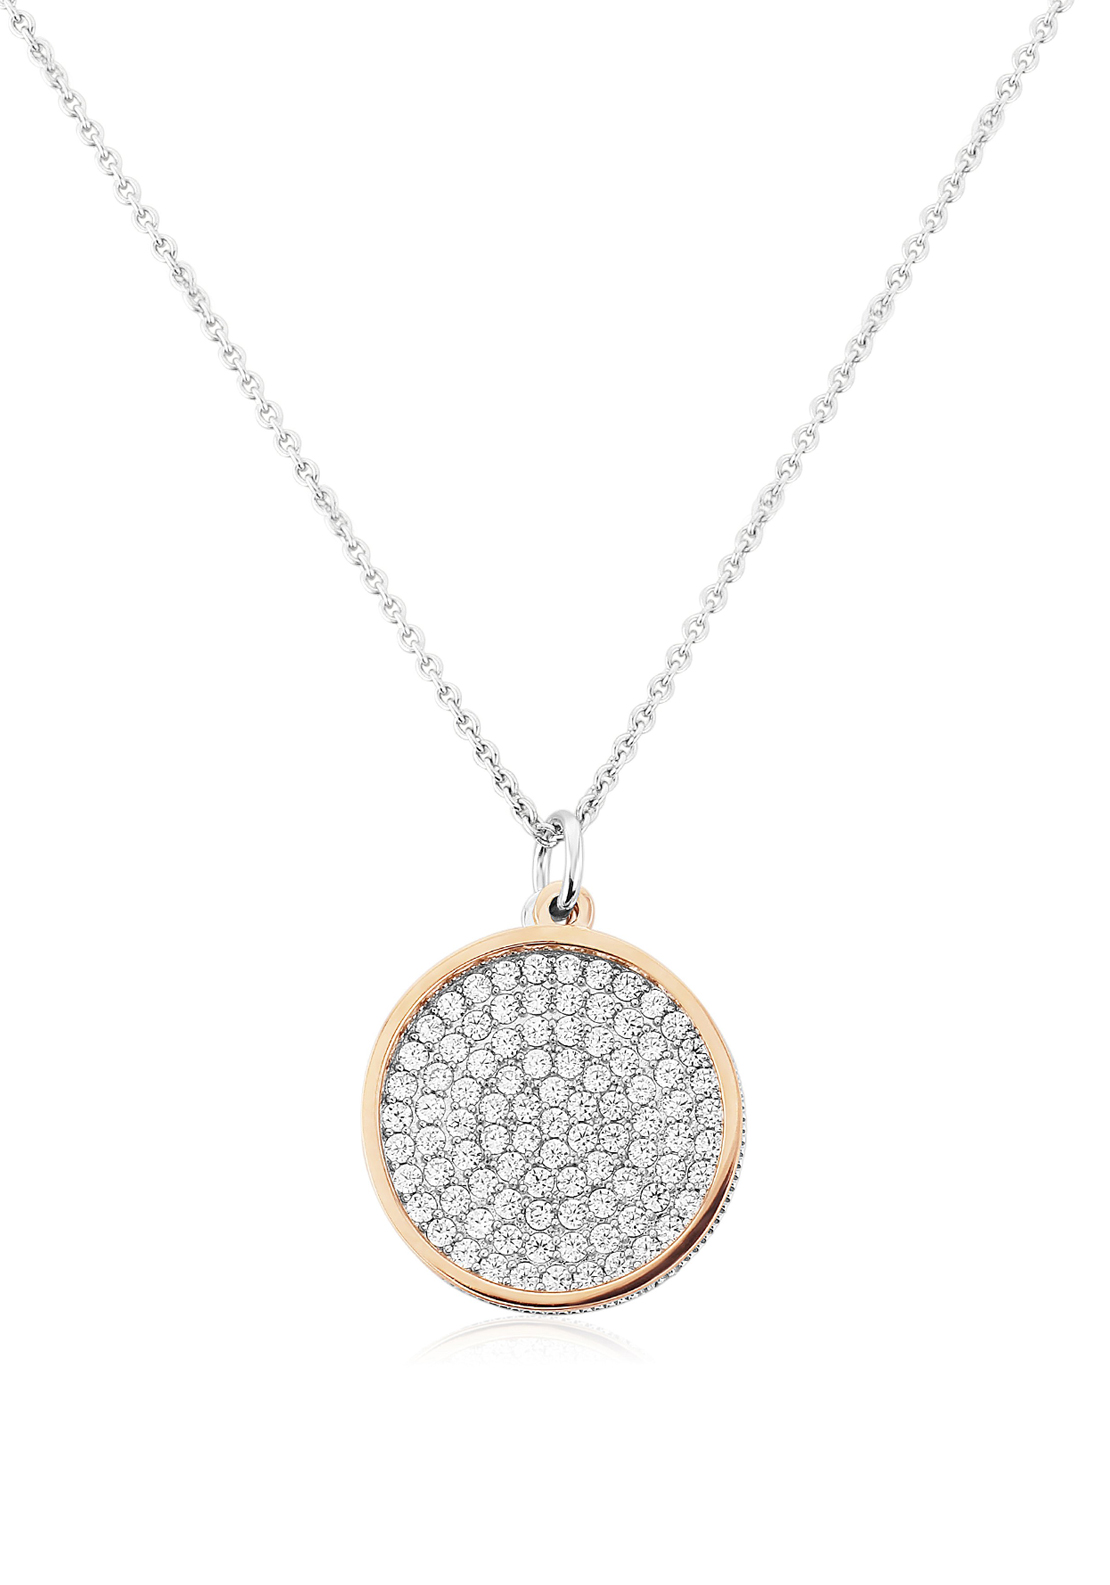 Waterford Crystal Pave Studded Disc Pendant Necklace, Silver